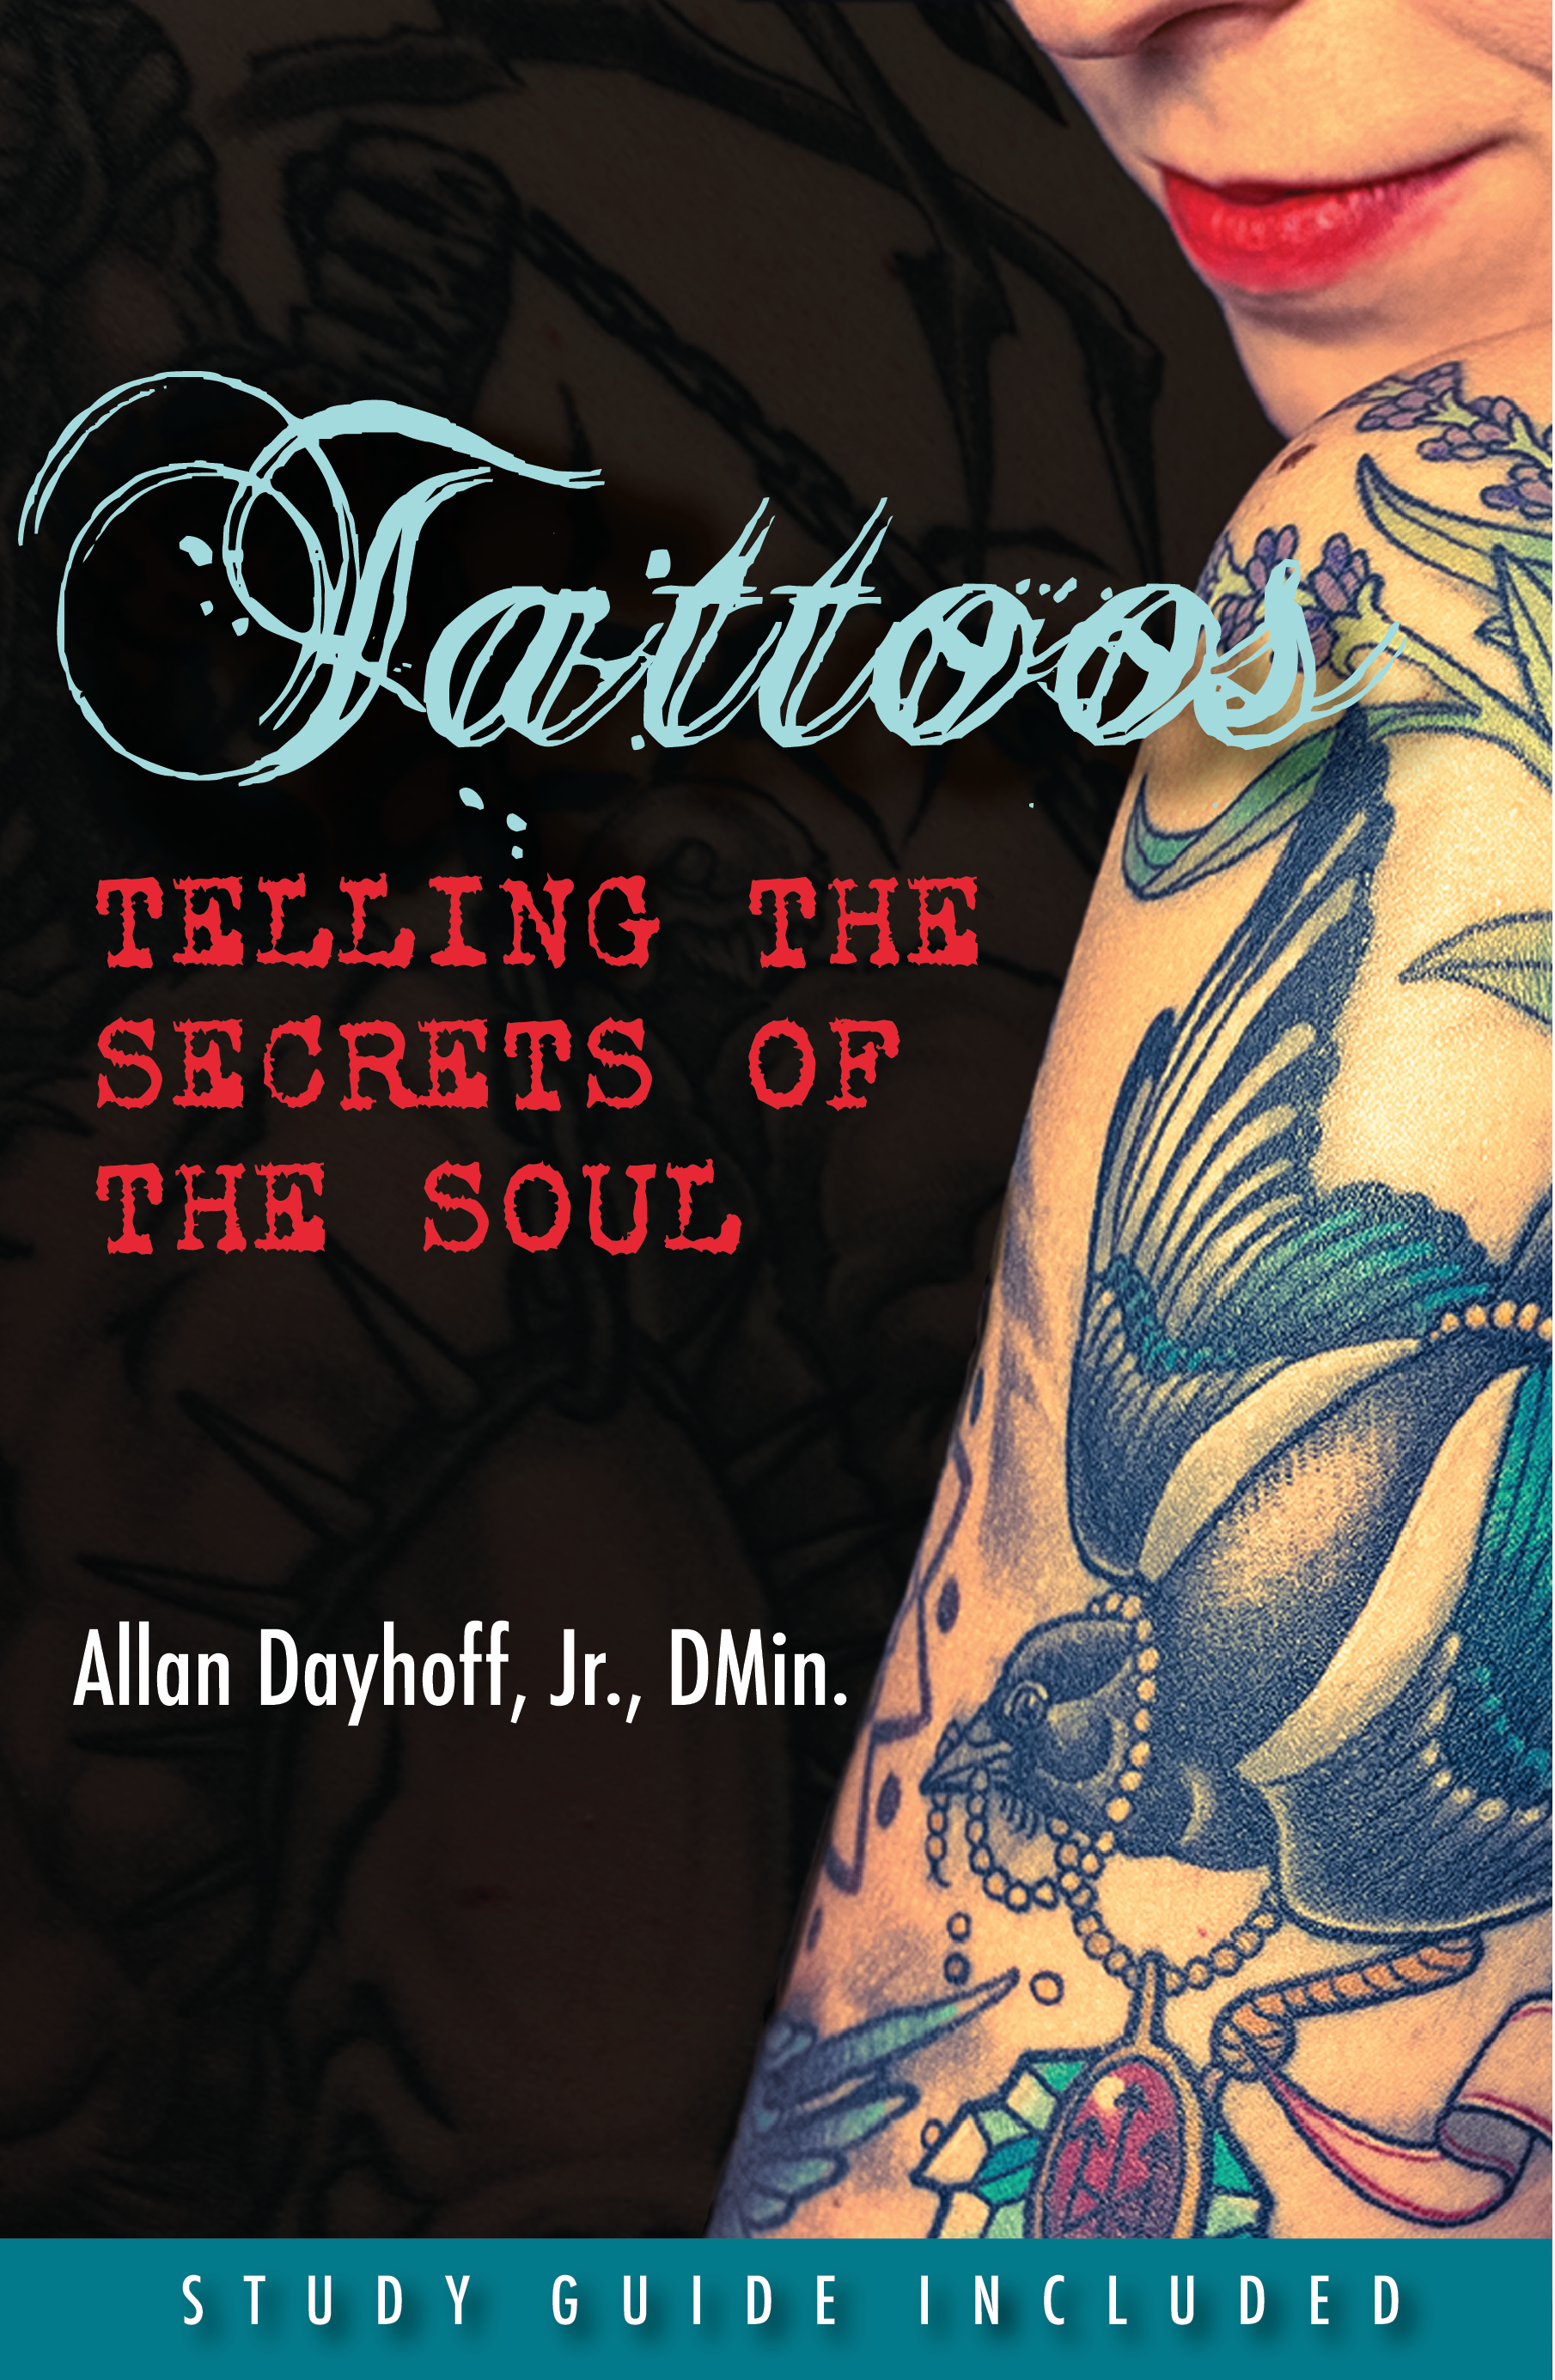 TATTOOS-TELLING SECRETS-NEW-7-12-18-12-0